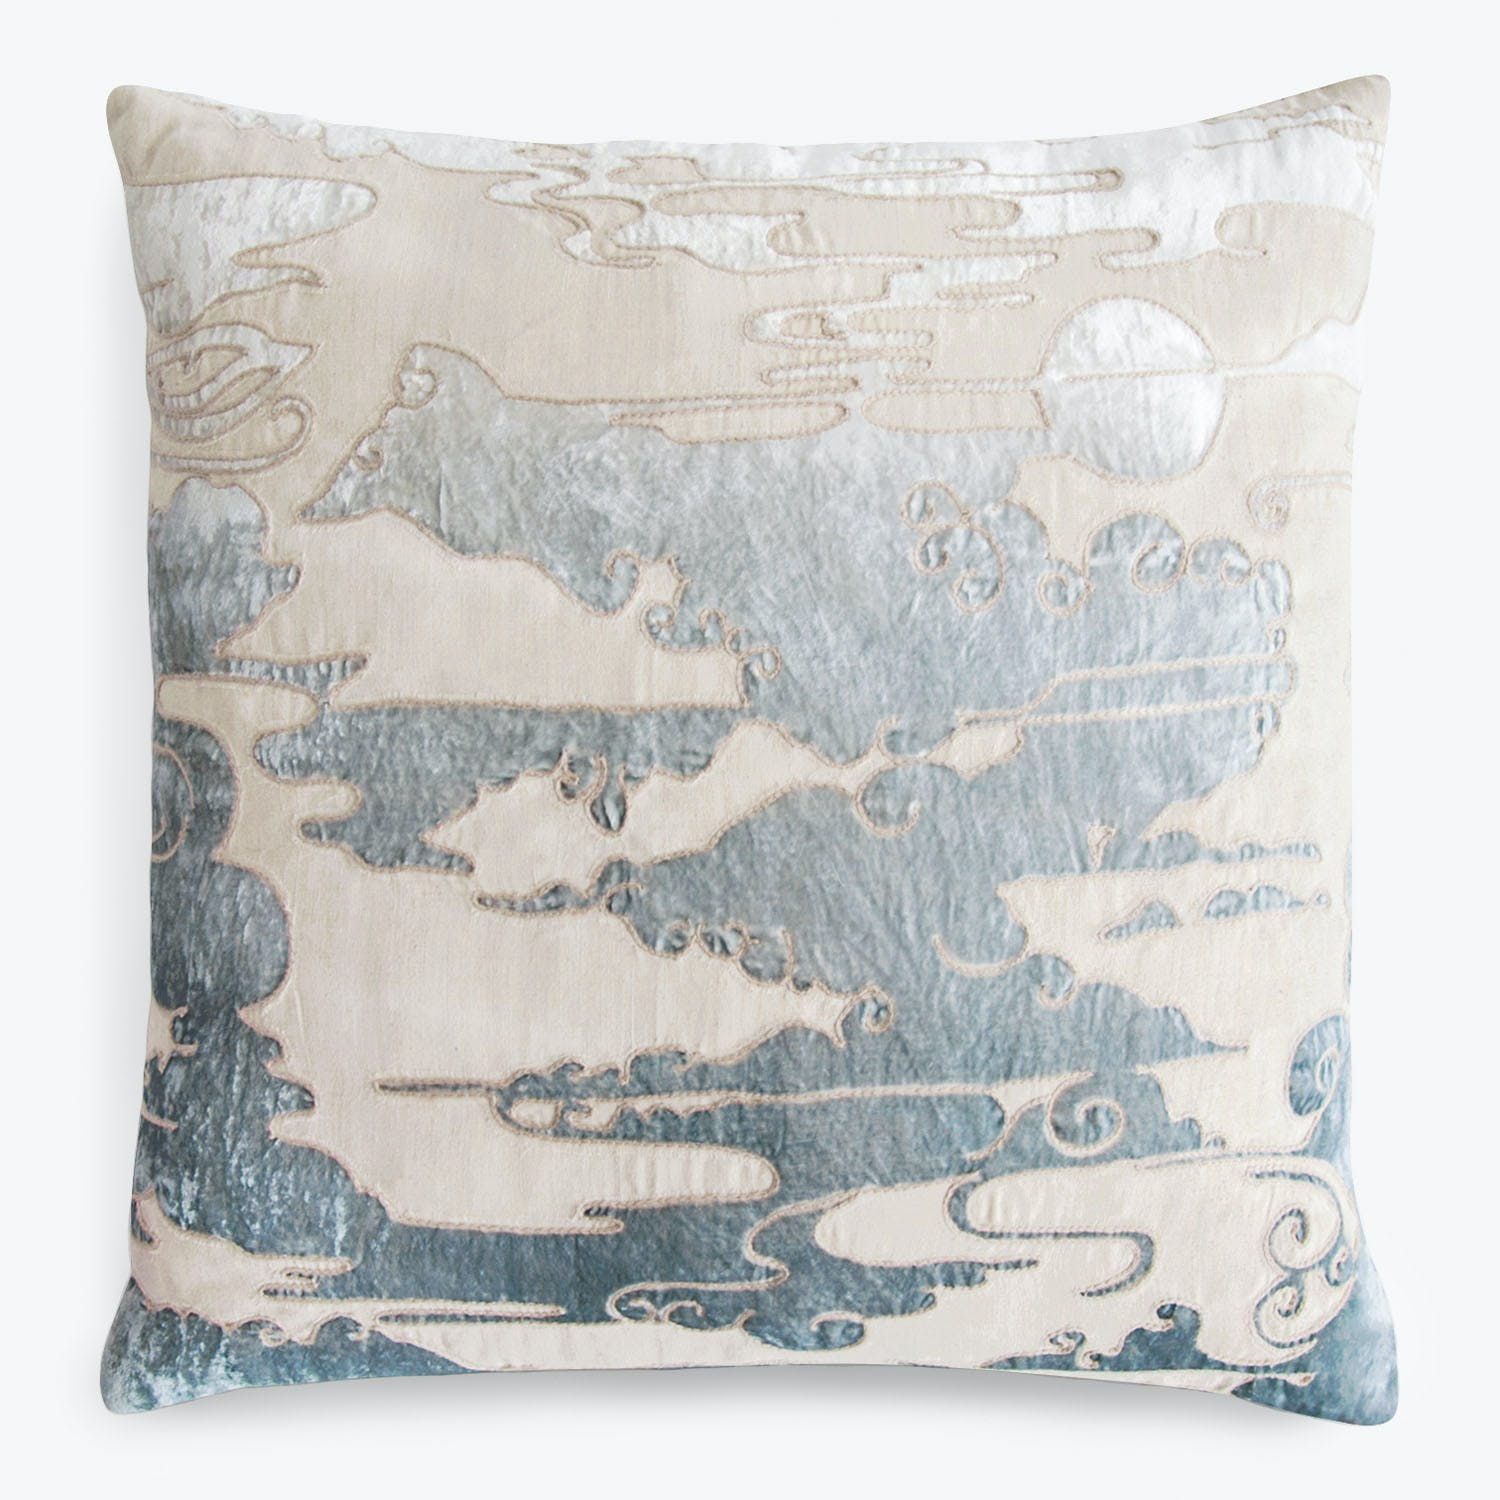 Cloud Appliqued Linen Pillow Seaglass